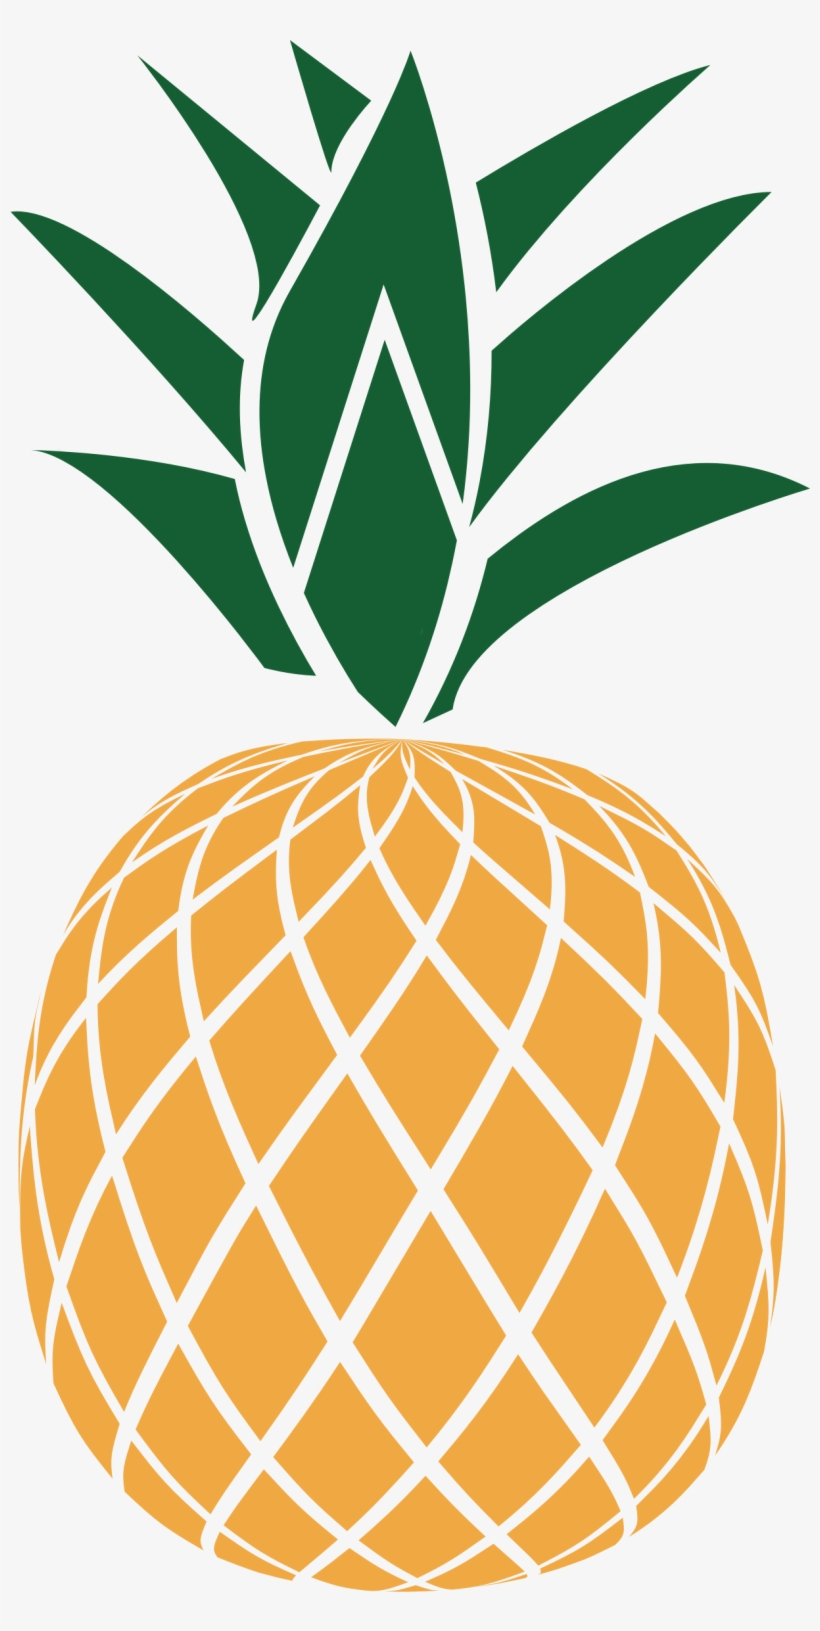 Free Download Pineapple Vector Clipart Pineapple Clip ...